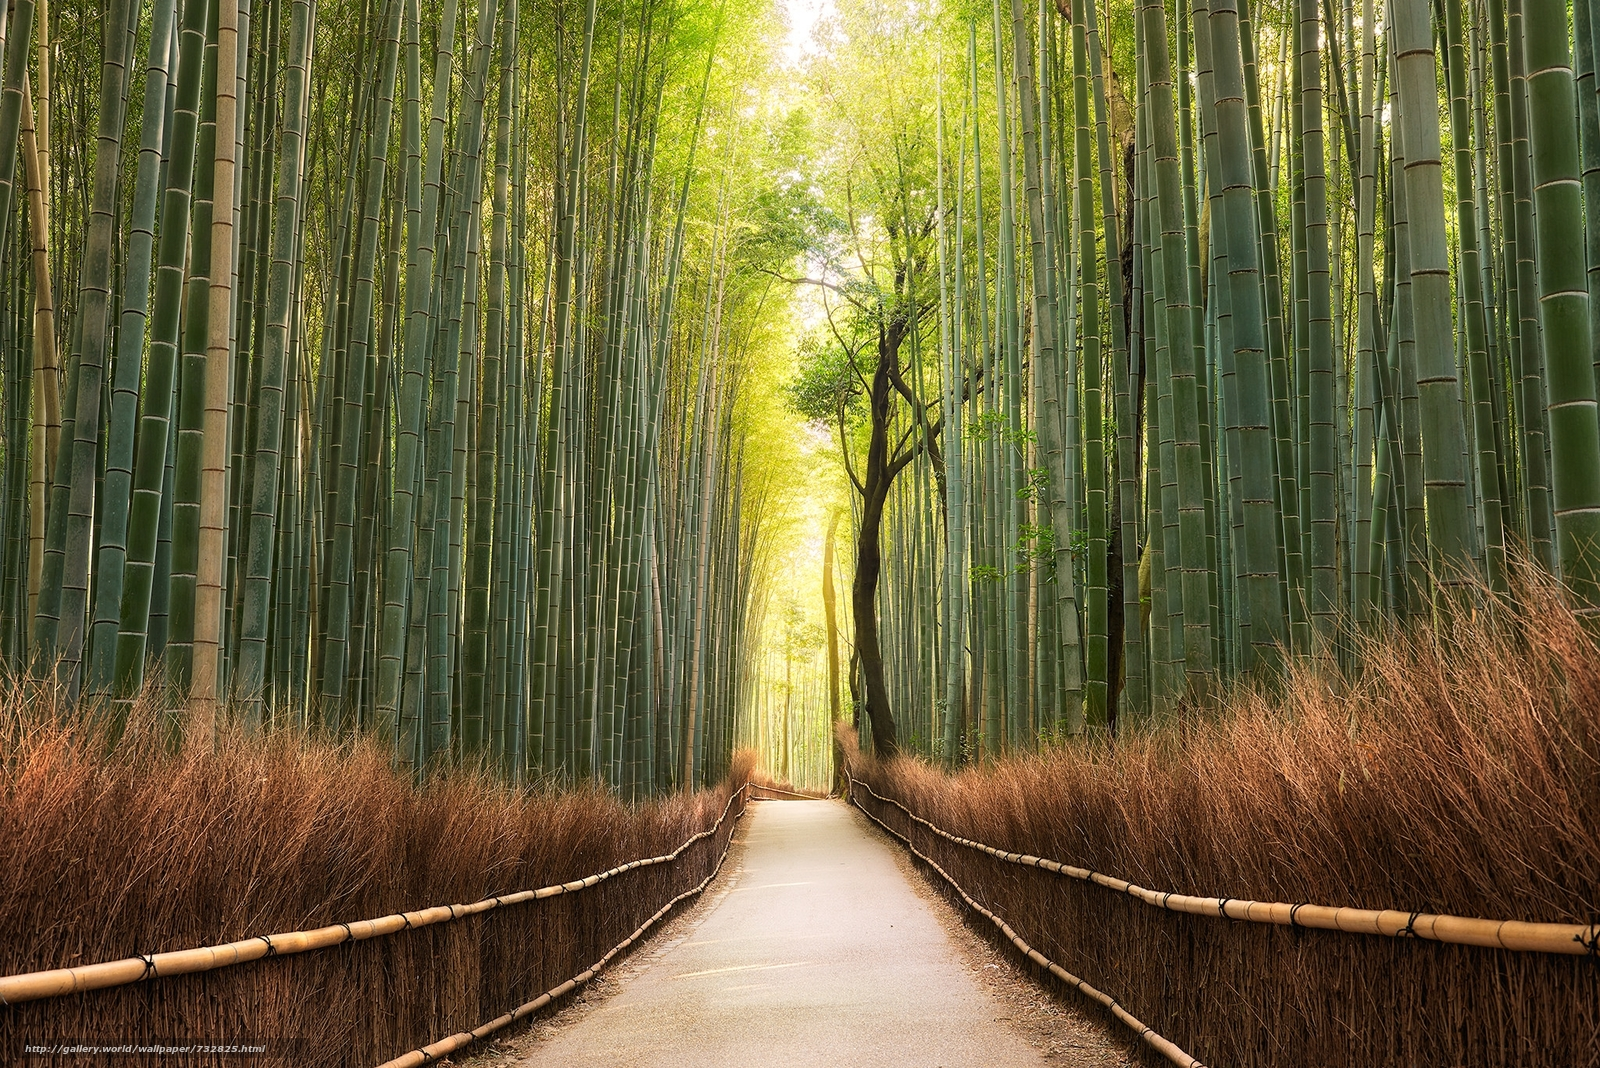 Kyoto, Japan, bamboo, morning, Sunrise, Sagan, bamboo forest, road, landscape